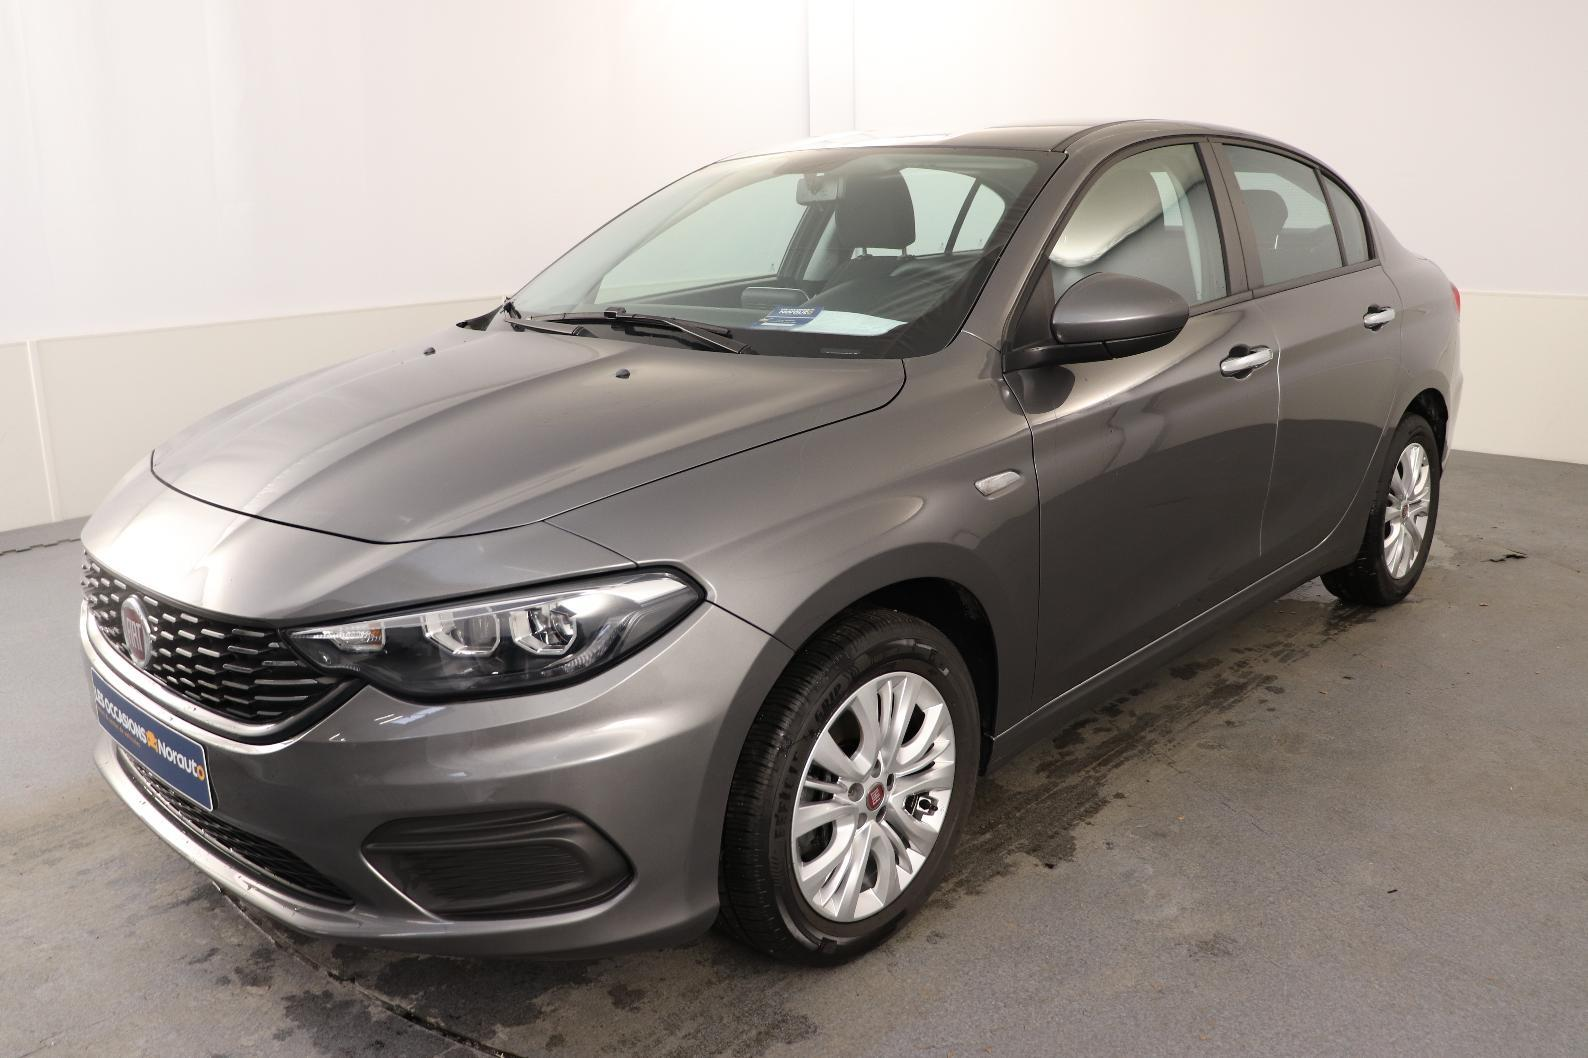 FIAT TIPO MY19 E6D Tipo 1.3 MultiJet 95 chS&S Pop